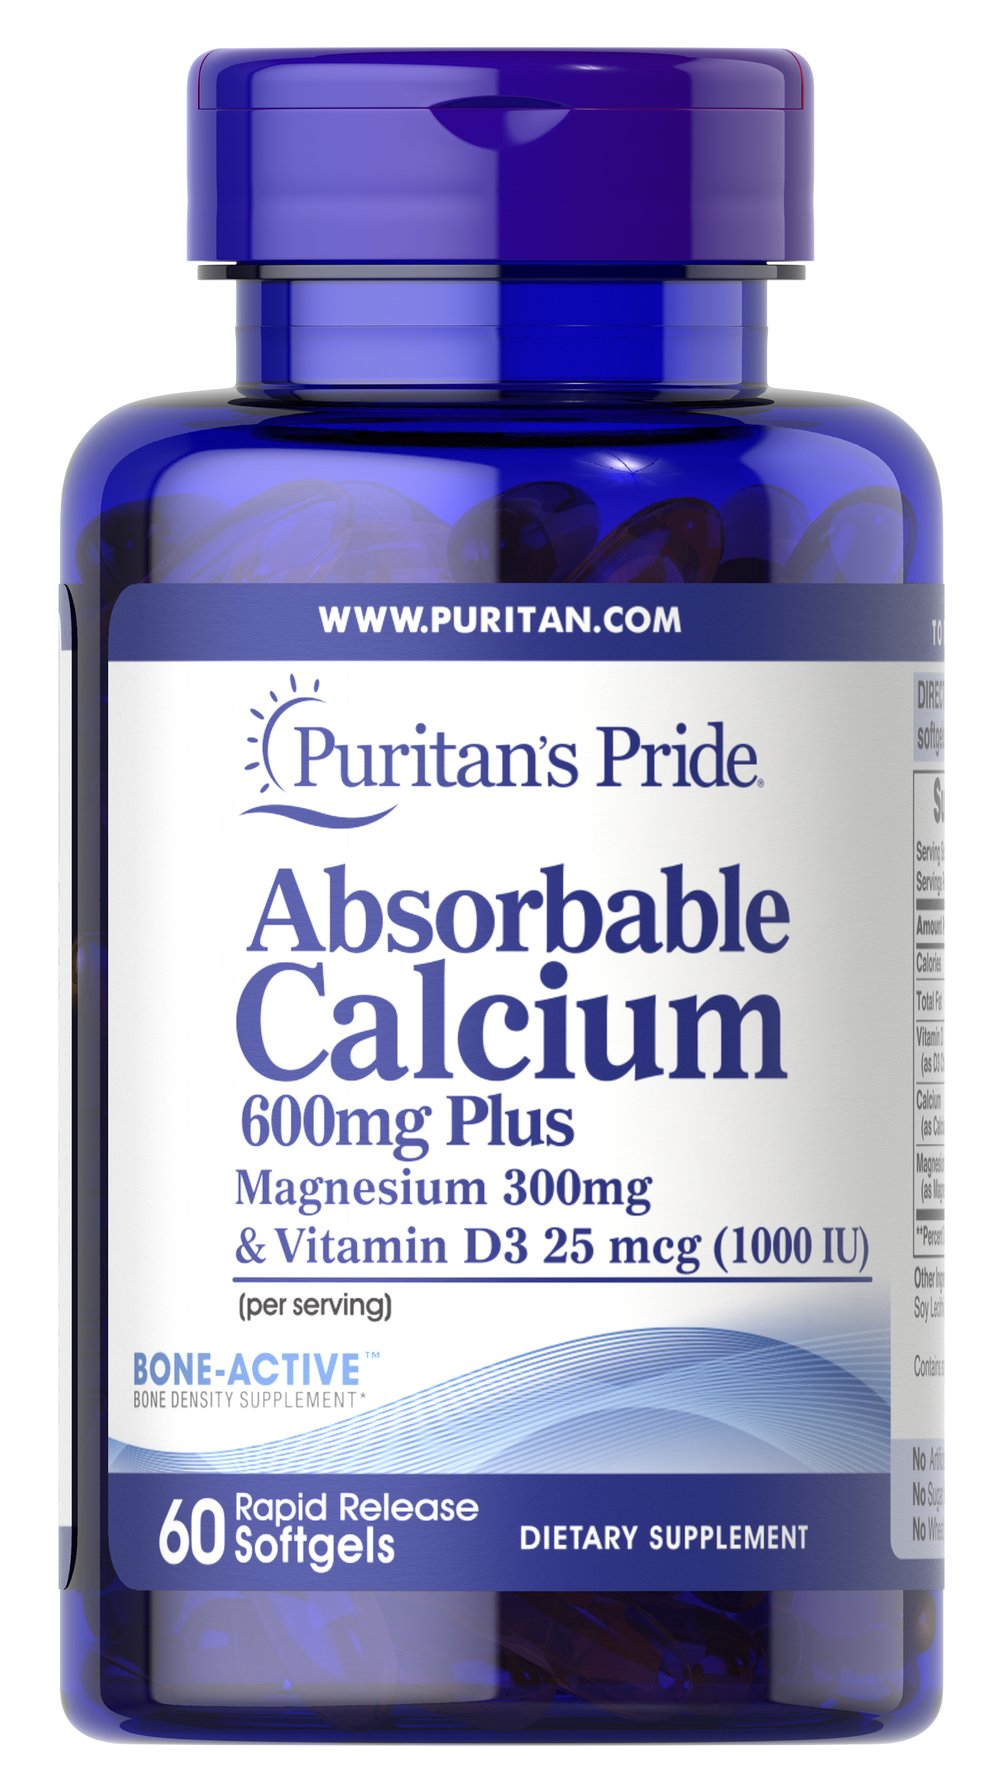 Absorbable Calcium 600mg plus Magnesium 300mg & Vitamin D 1000iu <p>Bone-Active™ Bone Density Supplement</p><p></p><p>Puritan's Pride® Premium supplements are produced from the finest raw  materials under our stringent quality control standards. Our  state-of-the-art manufacturing and packaging facilities insure you the  highest quality nutritional supplements money can buy. When it comes to  your health...choose the best.</p><p></p><p&